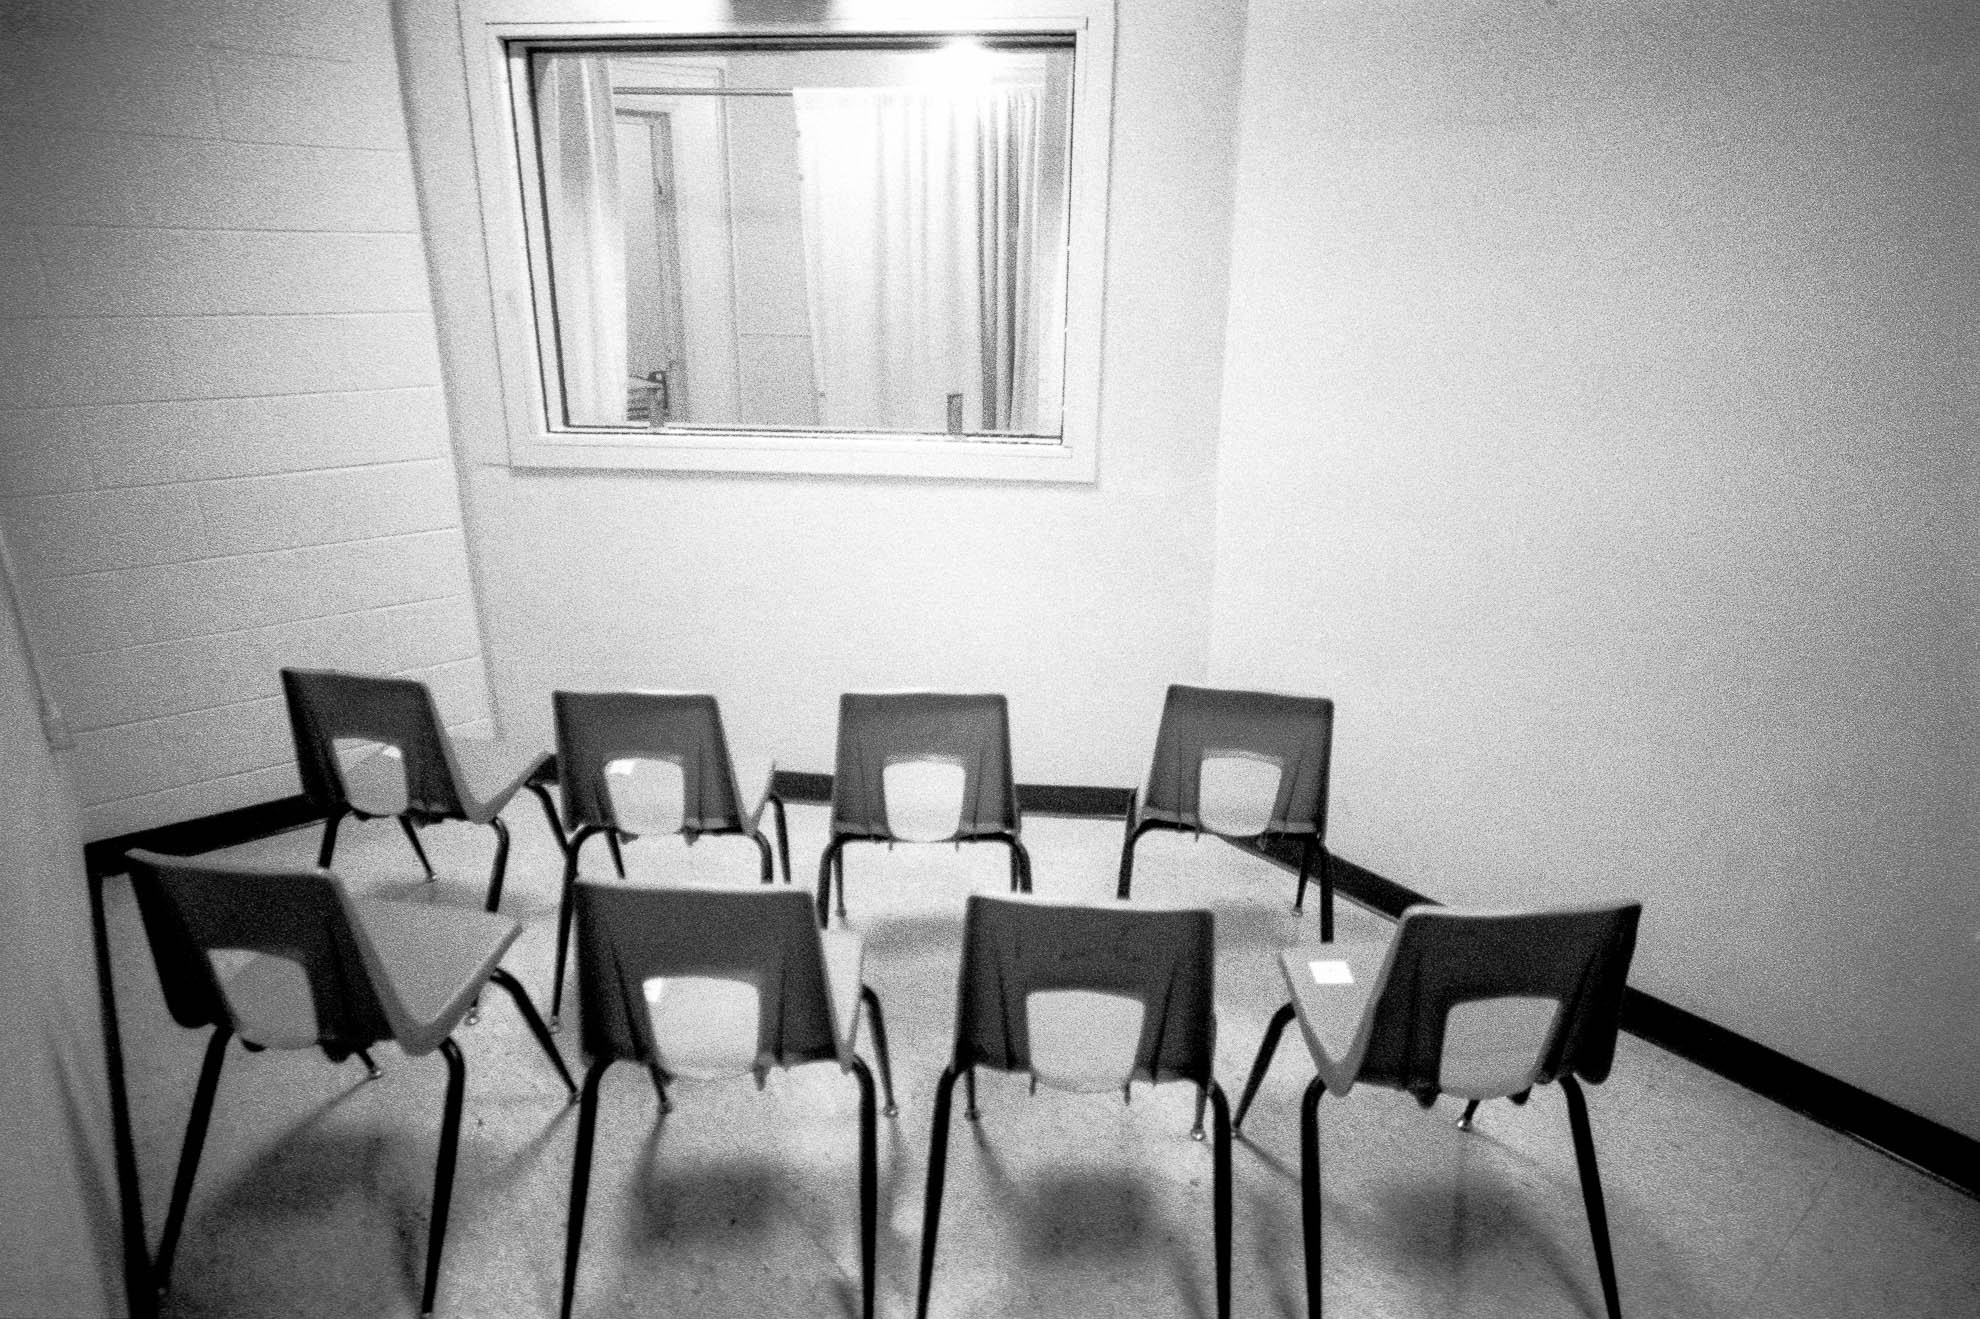 death penalty, photography, photos, execution, prison, documentary, north carolina, witness, death house